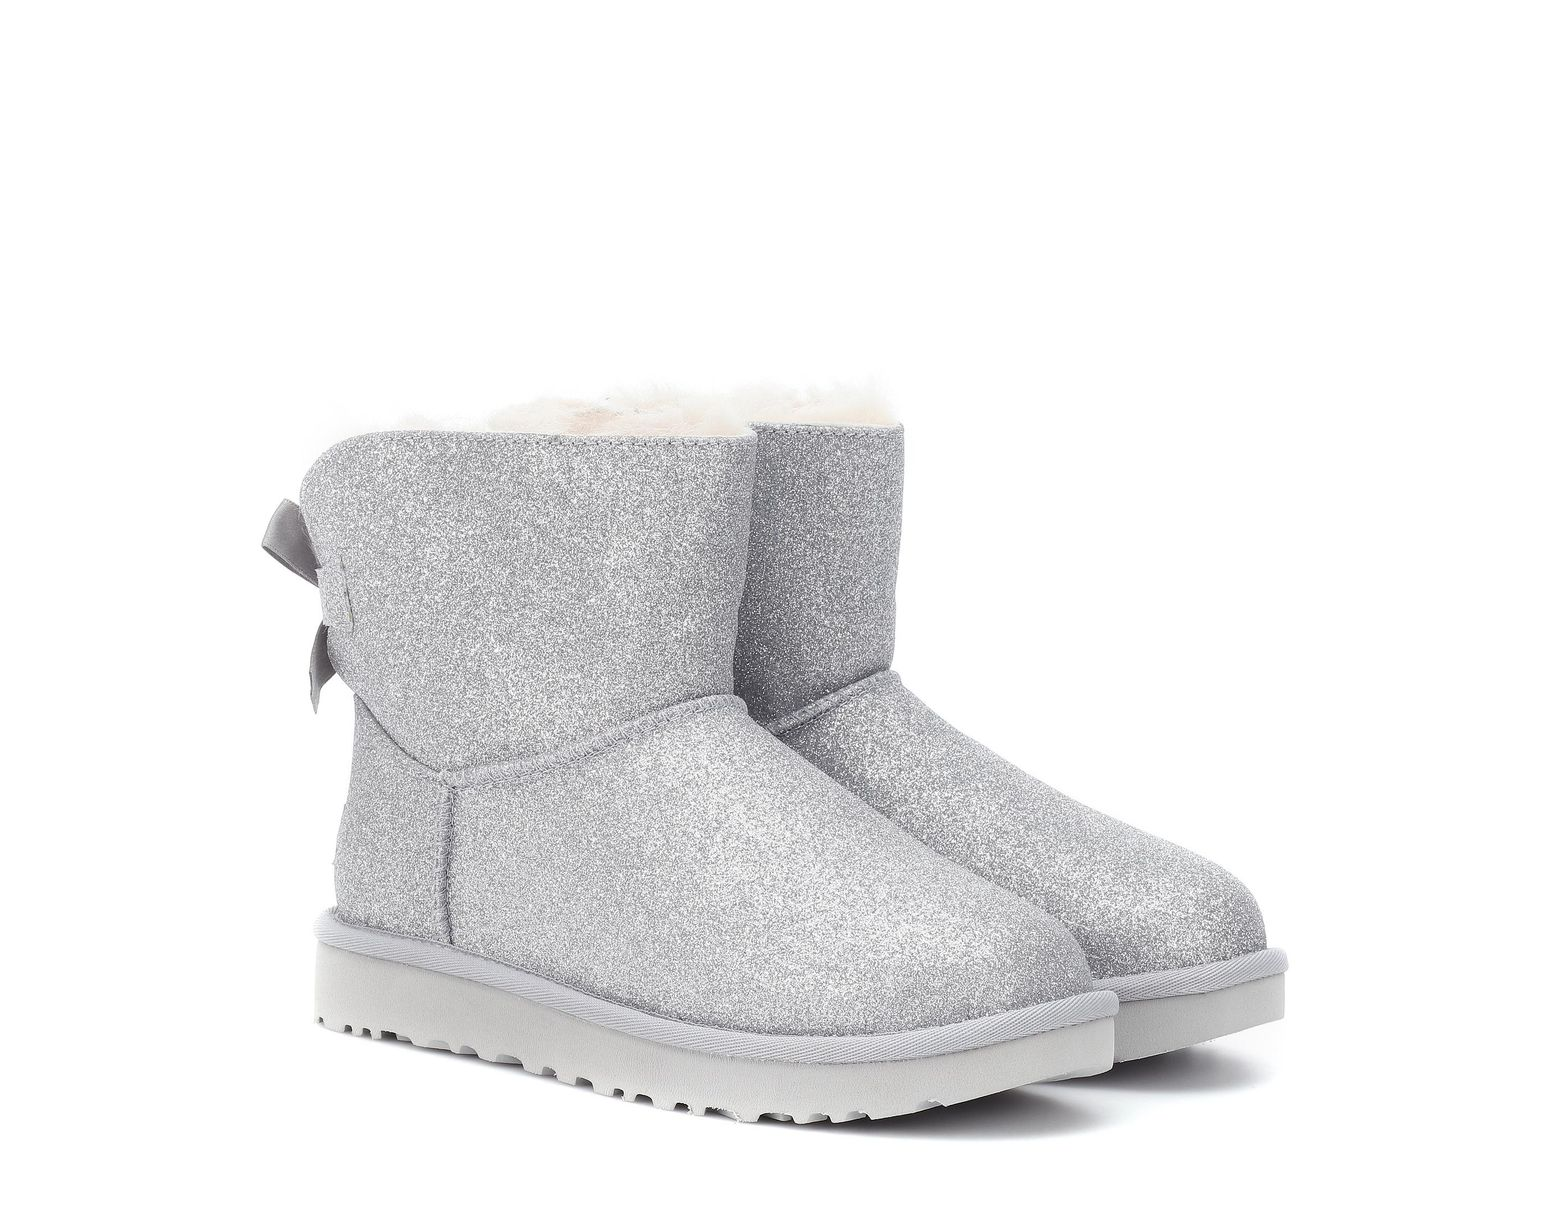 2f5043bfa7 UGG Mini Bailey Bow Glitter Ankle Boots in Metallic - Save 55% - Lyst